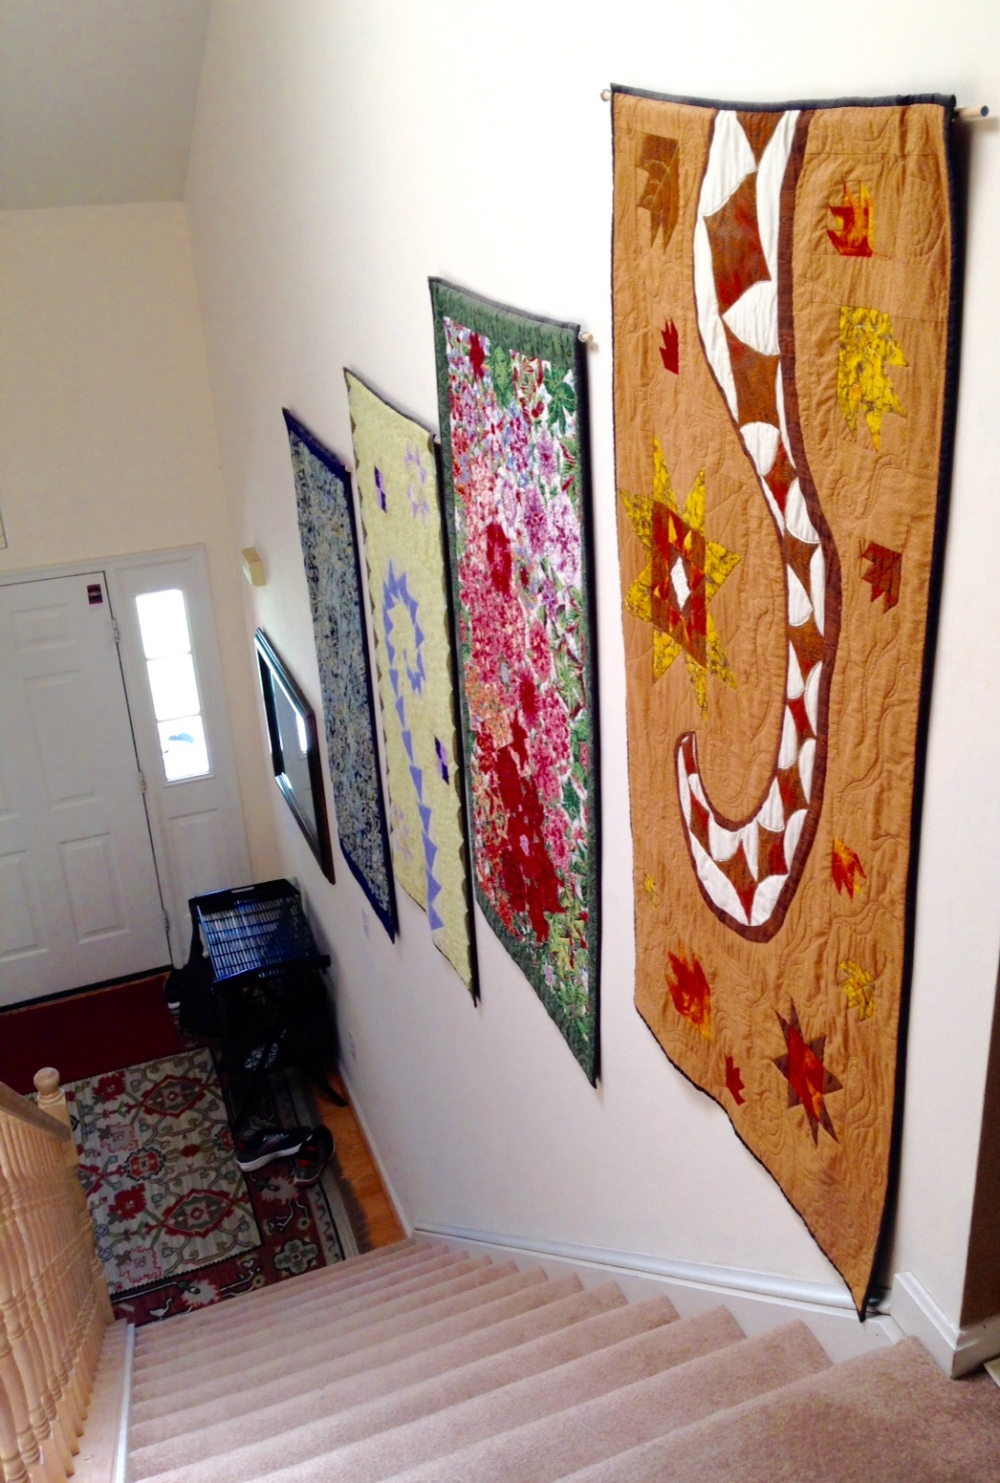 mindy'squilts